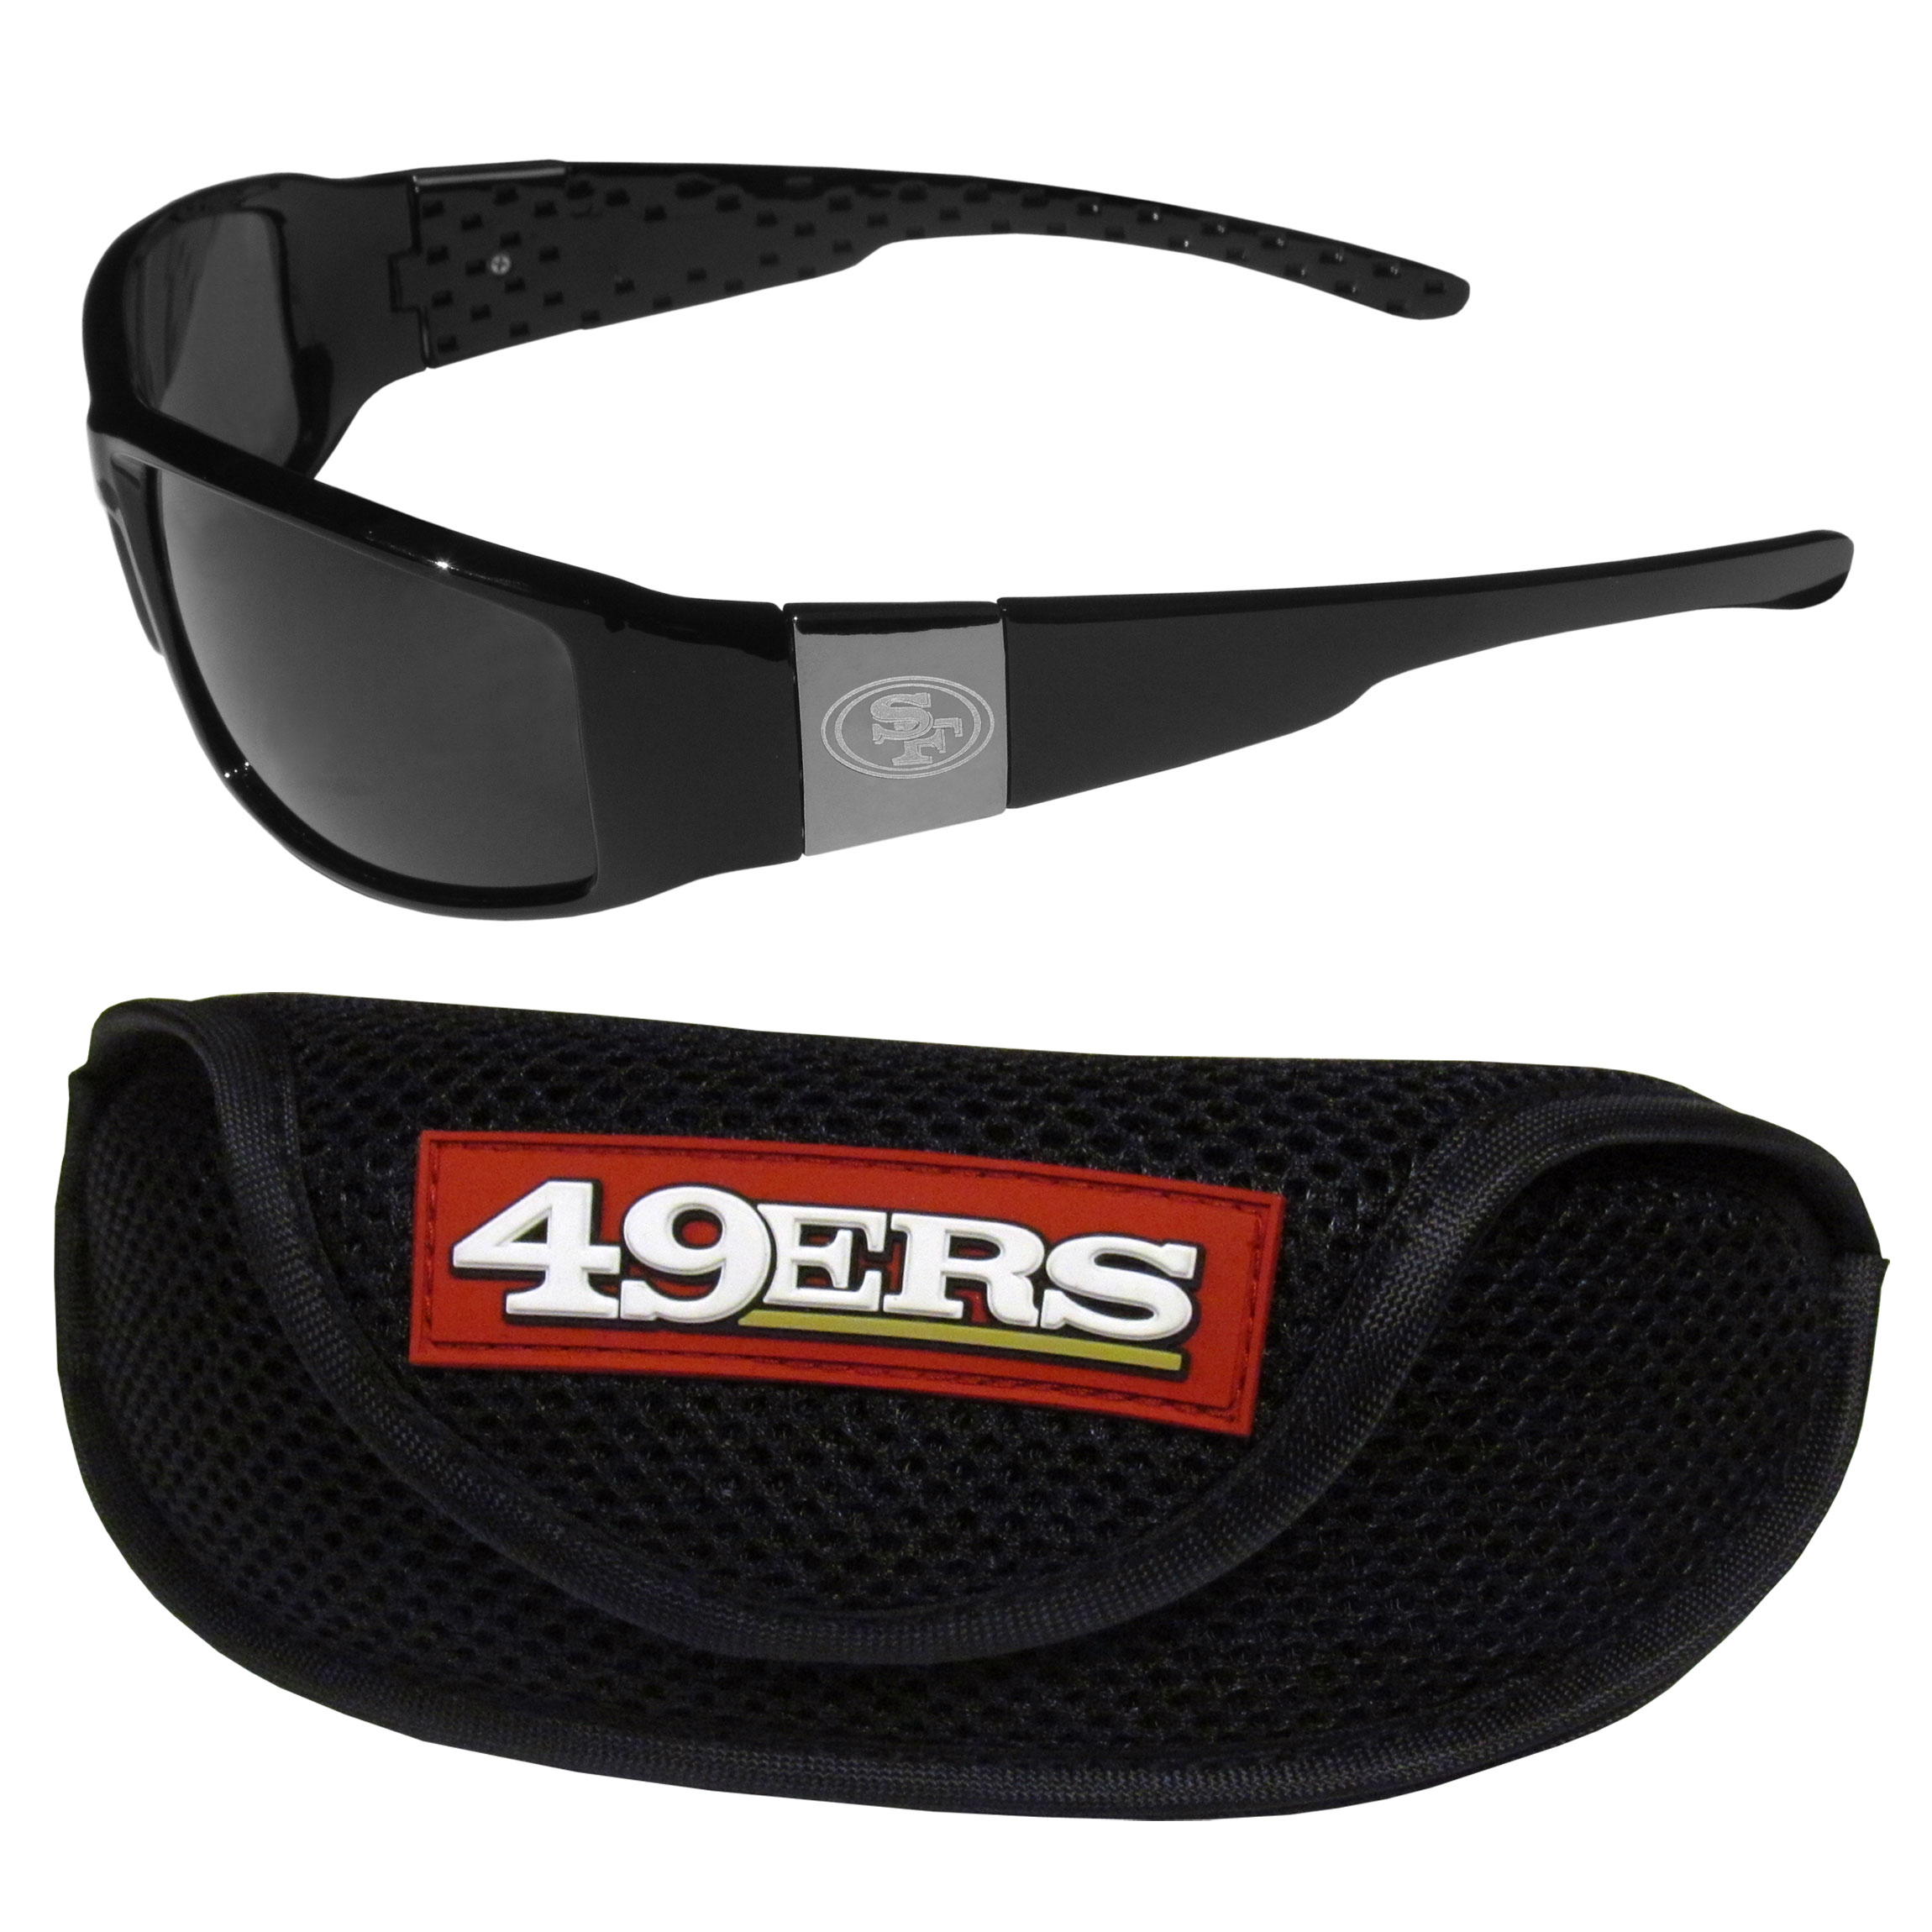 San Francisco 49ers Chrome Wrap Sunglasses and Sports Case - Our sleek and stylish San Francisco 49ers chrome wrap sunglasses and our sporty mesh case. The sunglasses feature etched team logos on each arm and 100% UVA/UVB protection. The case features a large and colorful team emblem.